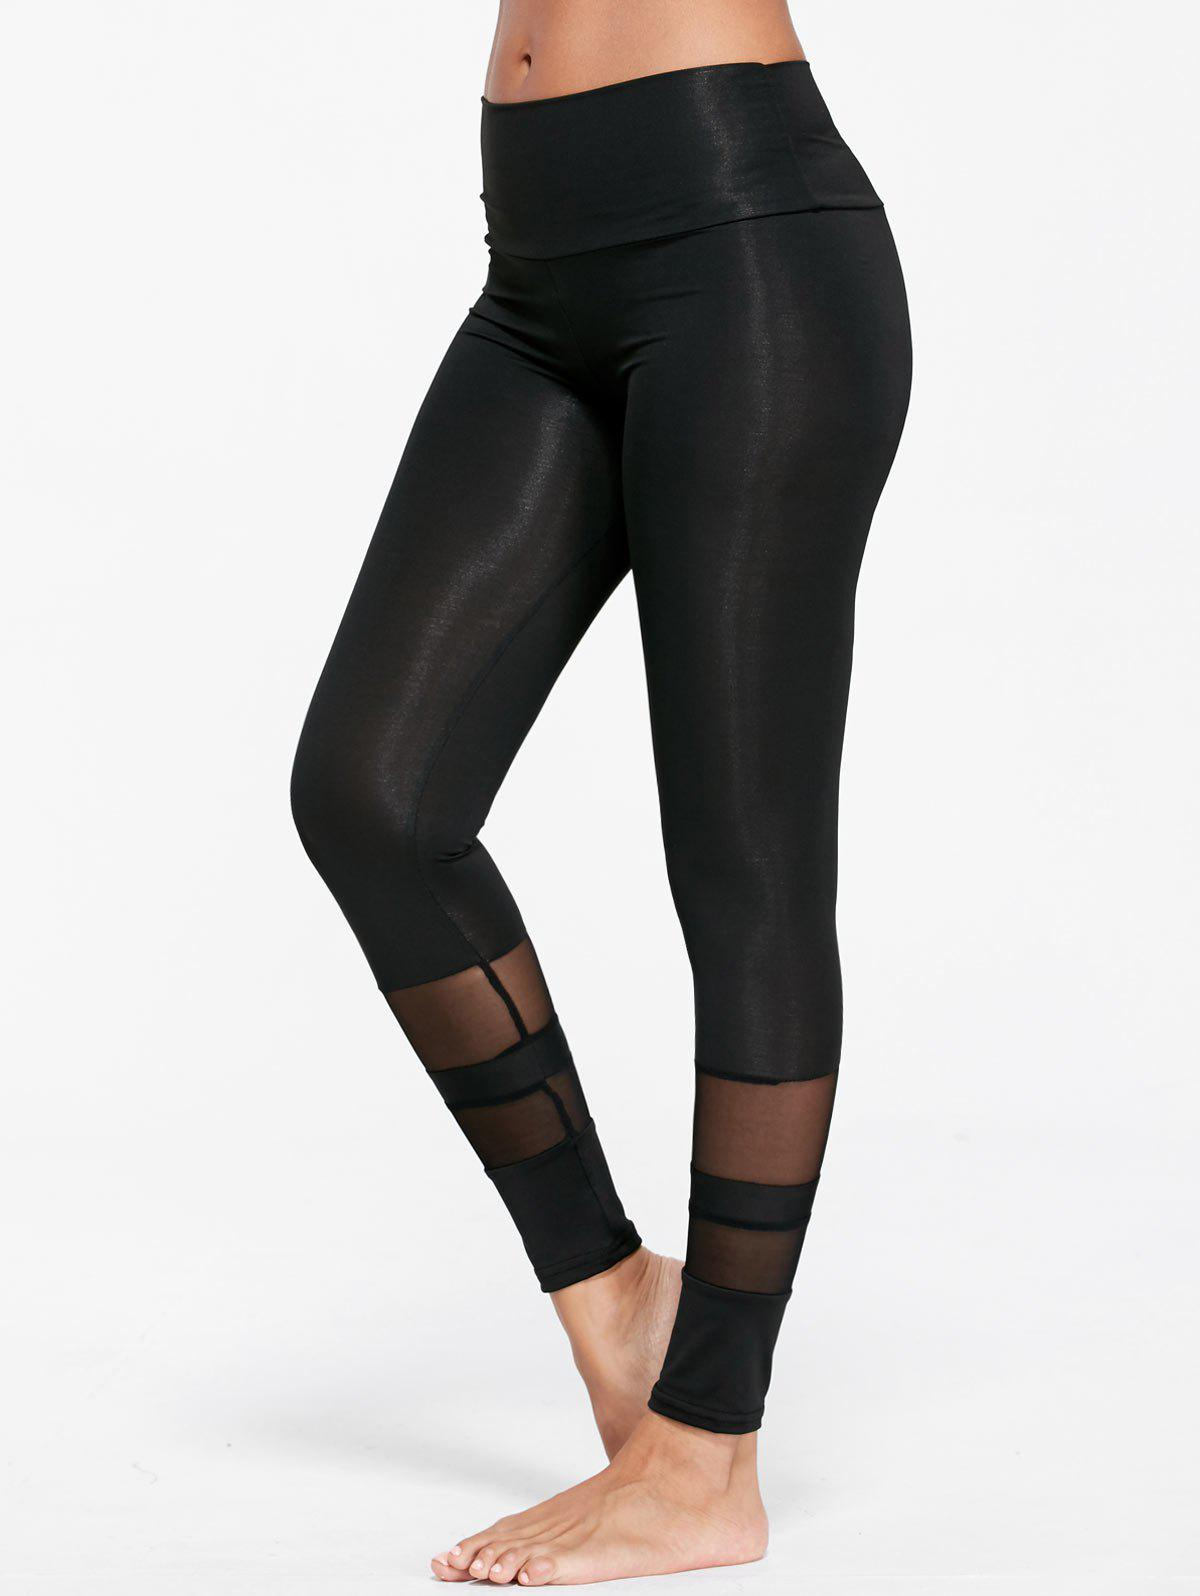 See Through  Mesh Insert Sports TightsWOMEN<br><br>Size: M; Color: BLACK; Style: Active; Length: Ninth; Material: Polyester,Spandex; Fit Type: Skinny; Waist Type: High; Closure Type: Elastic Waist; Pattern Type: Solid; Pant Style: Pencil Pants; Elasticity: Elastic; Weight: 0.1800kg; Package Contents: 1 x Leggings;